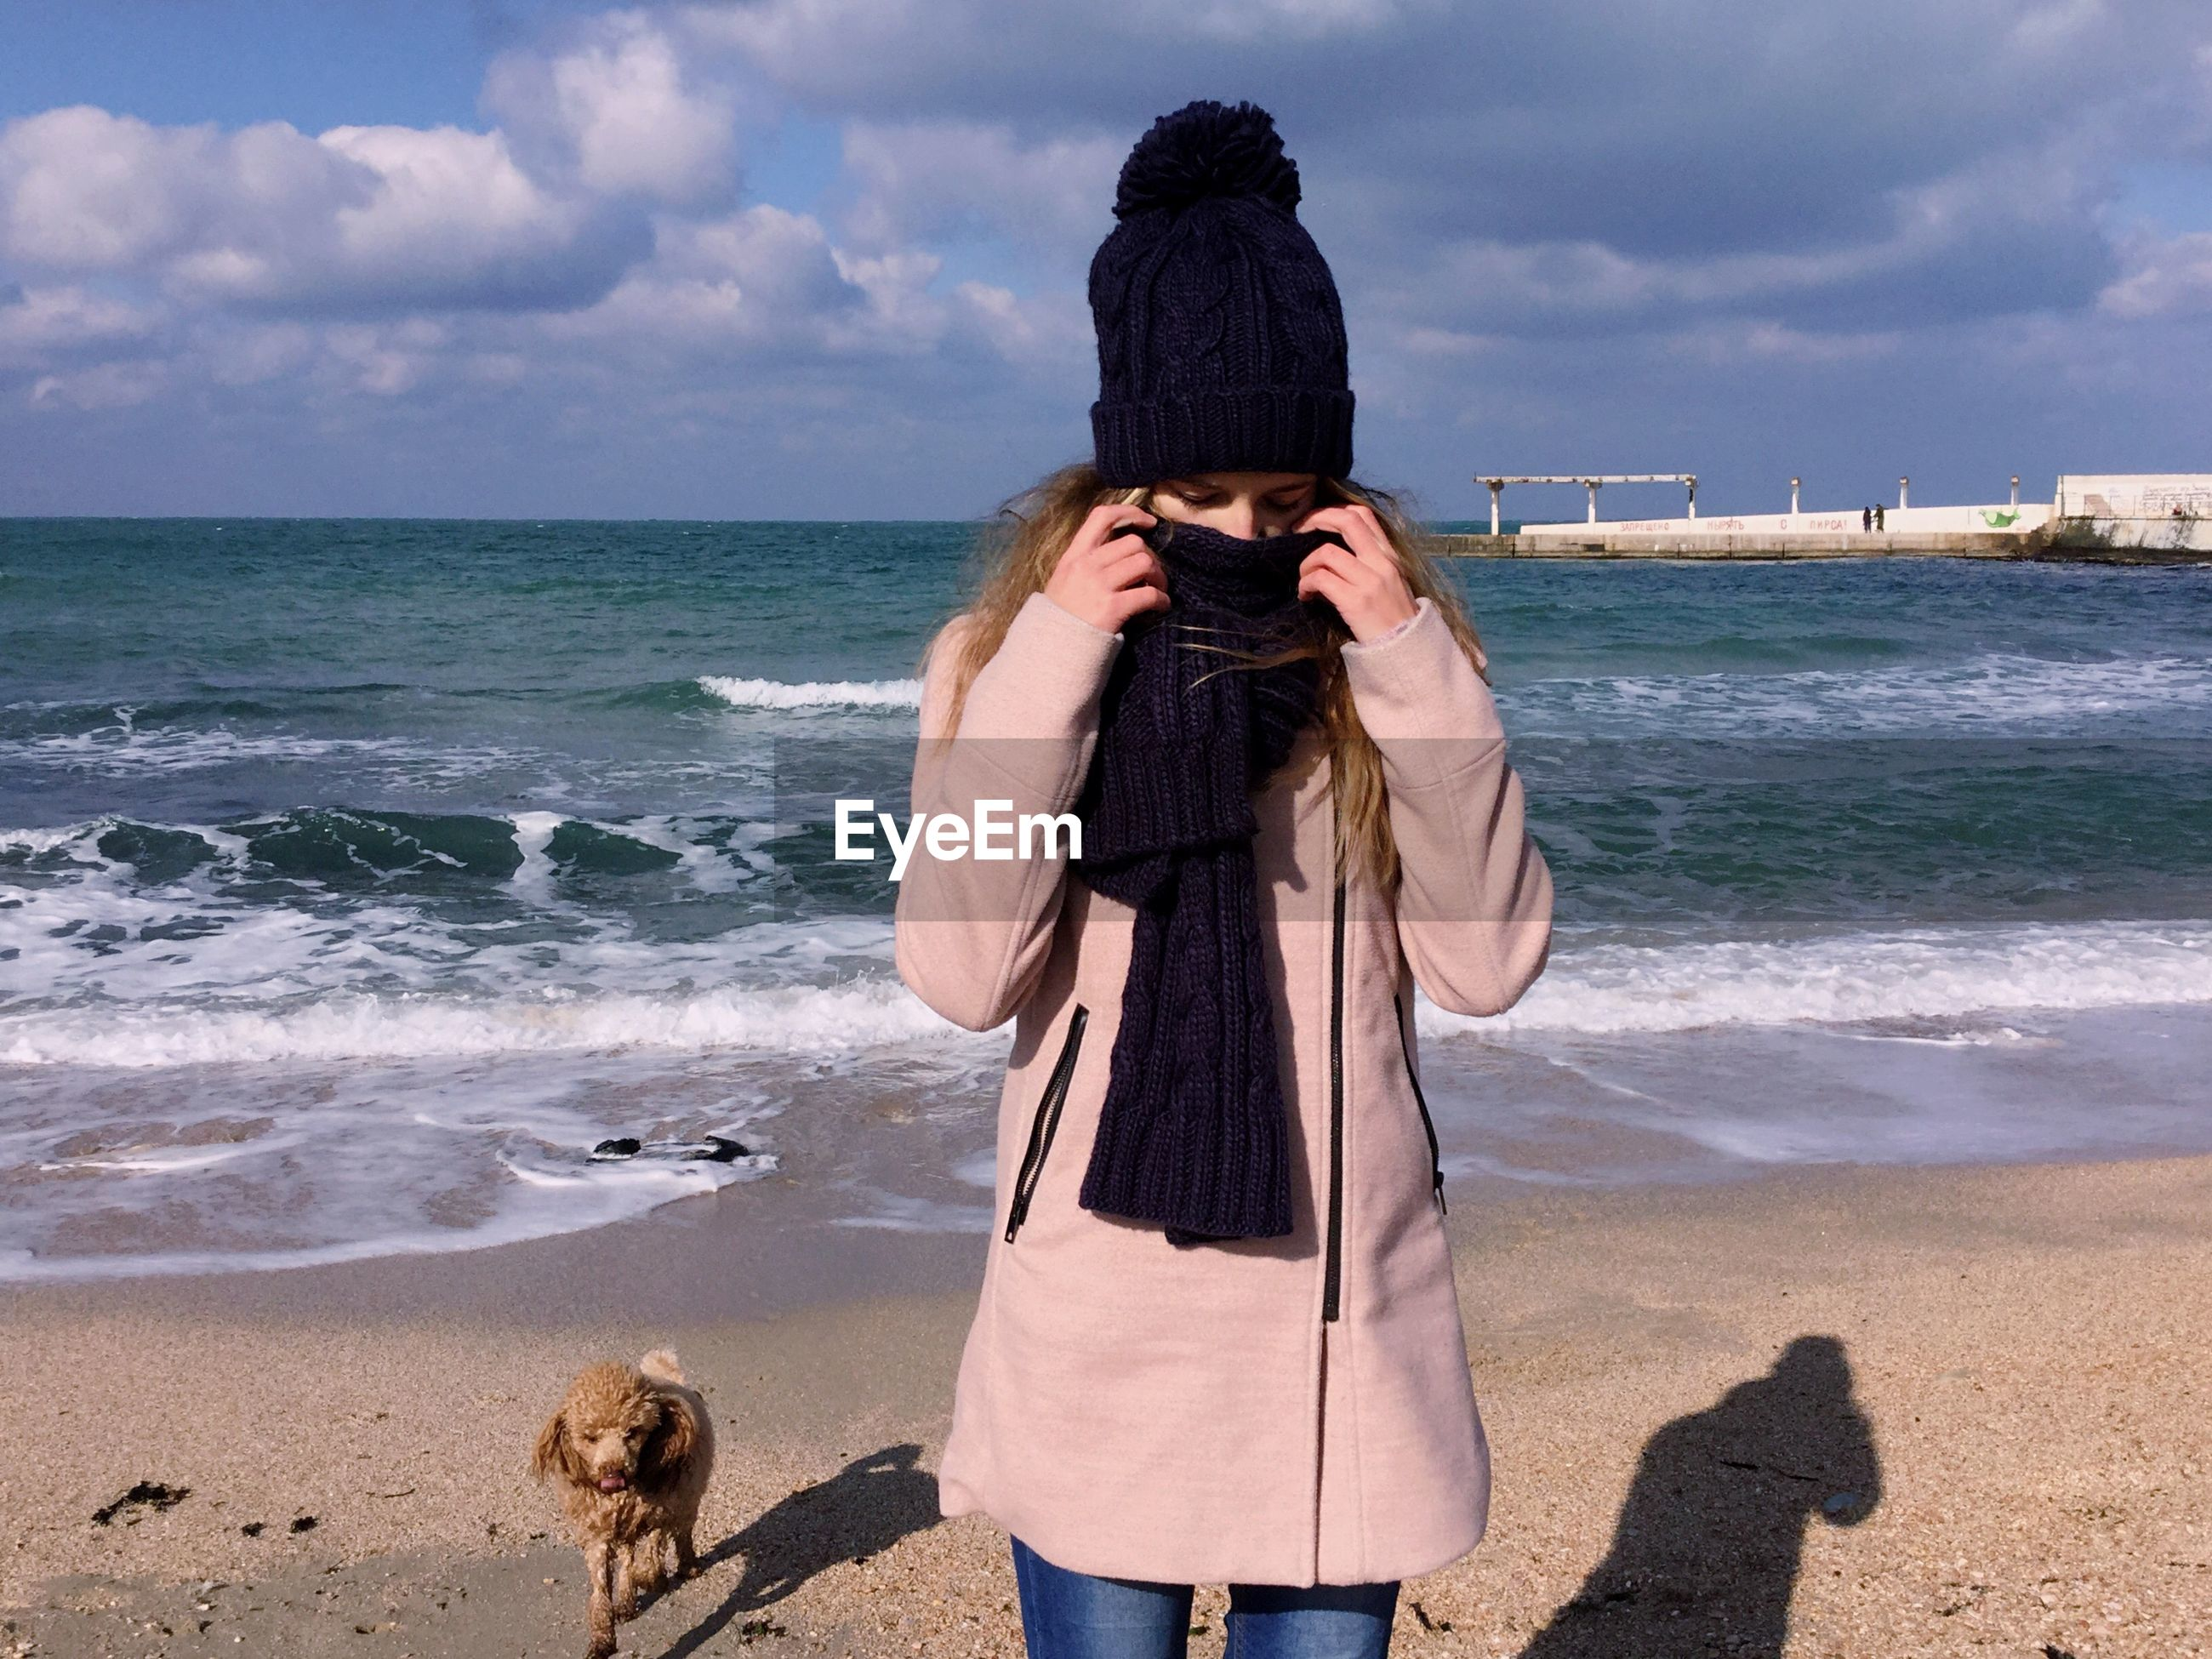 sea, beach, horizon over water, standing, only women, one person, one woman only, adults only, rear view, adult, outdoors, people, sky, day, women, wave, warm clothing, water, human body part